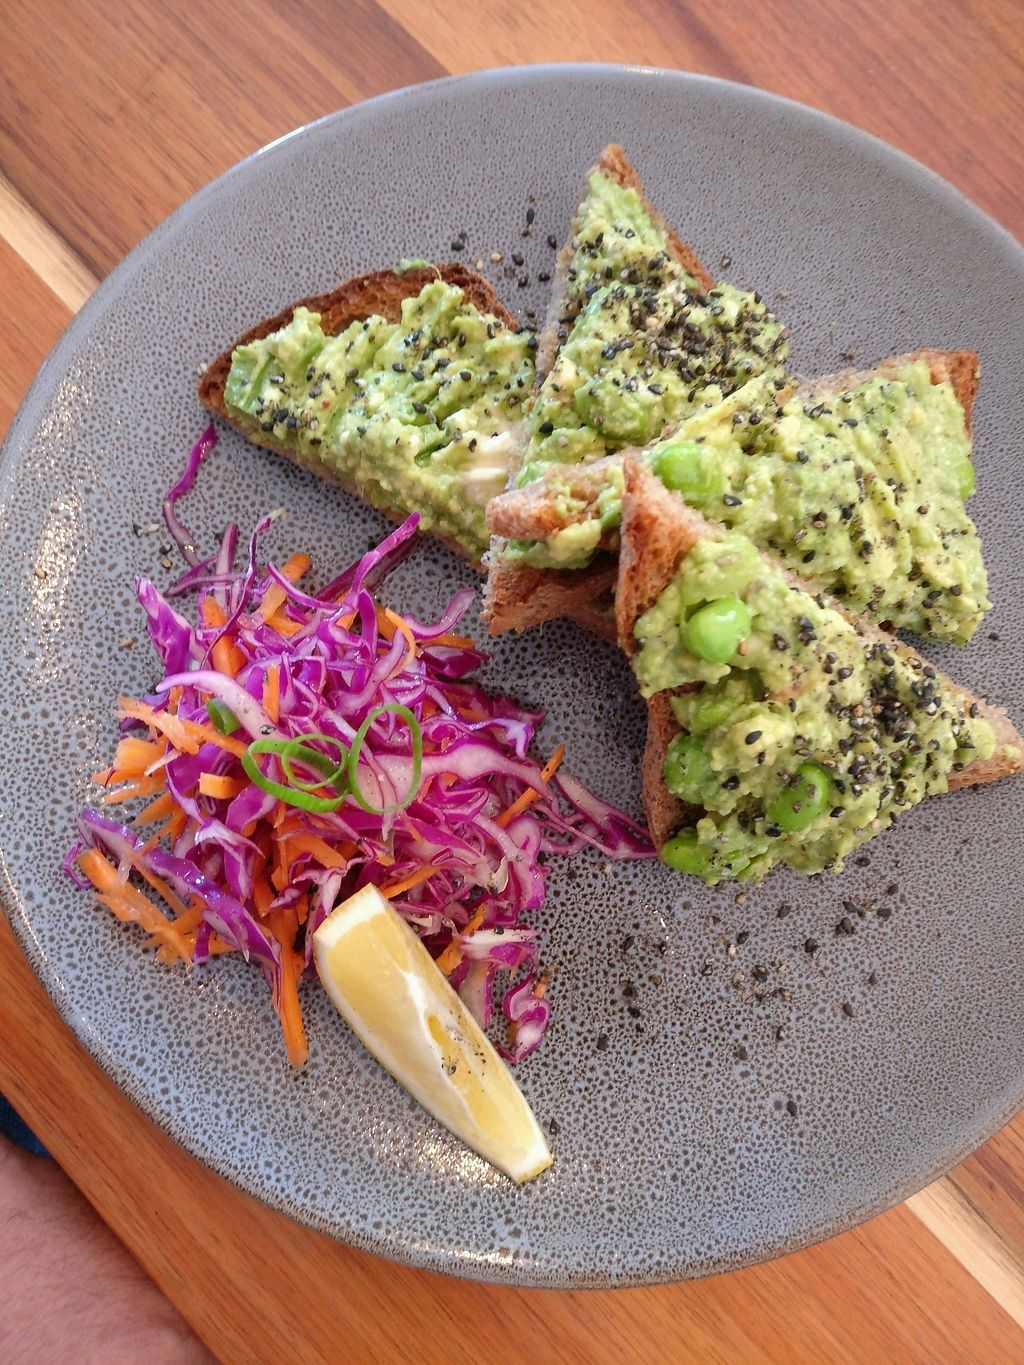 "Photo of Eka Wholefoods & Cafe  by <a href=""/members/profile/Aloo"">Aloo</a> <br/>smashed avo <br/> March 4, 2018  - <a href='/contact/abuse/image/61727/366351'>Report</a>"